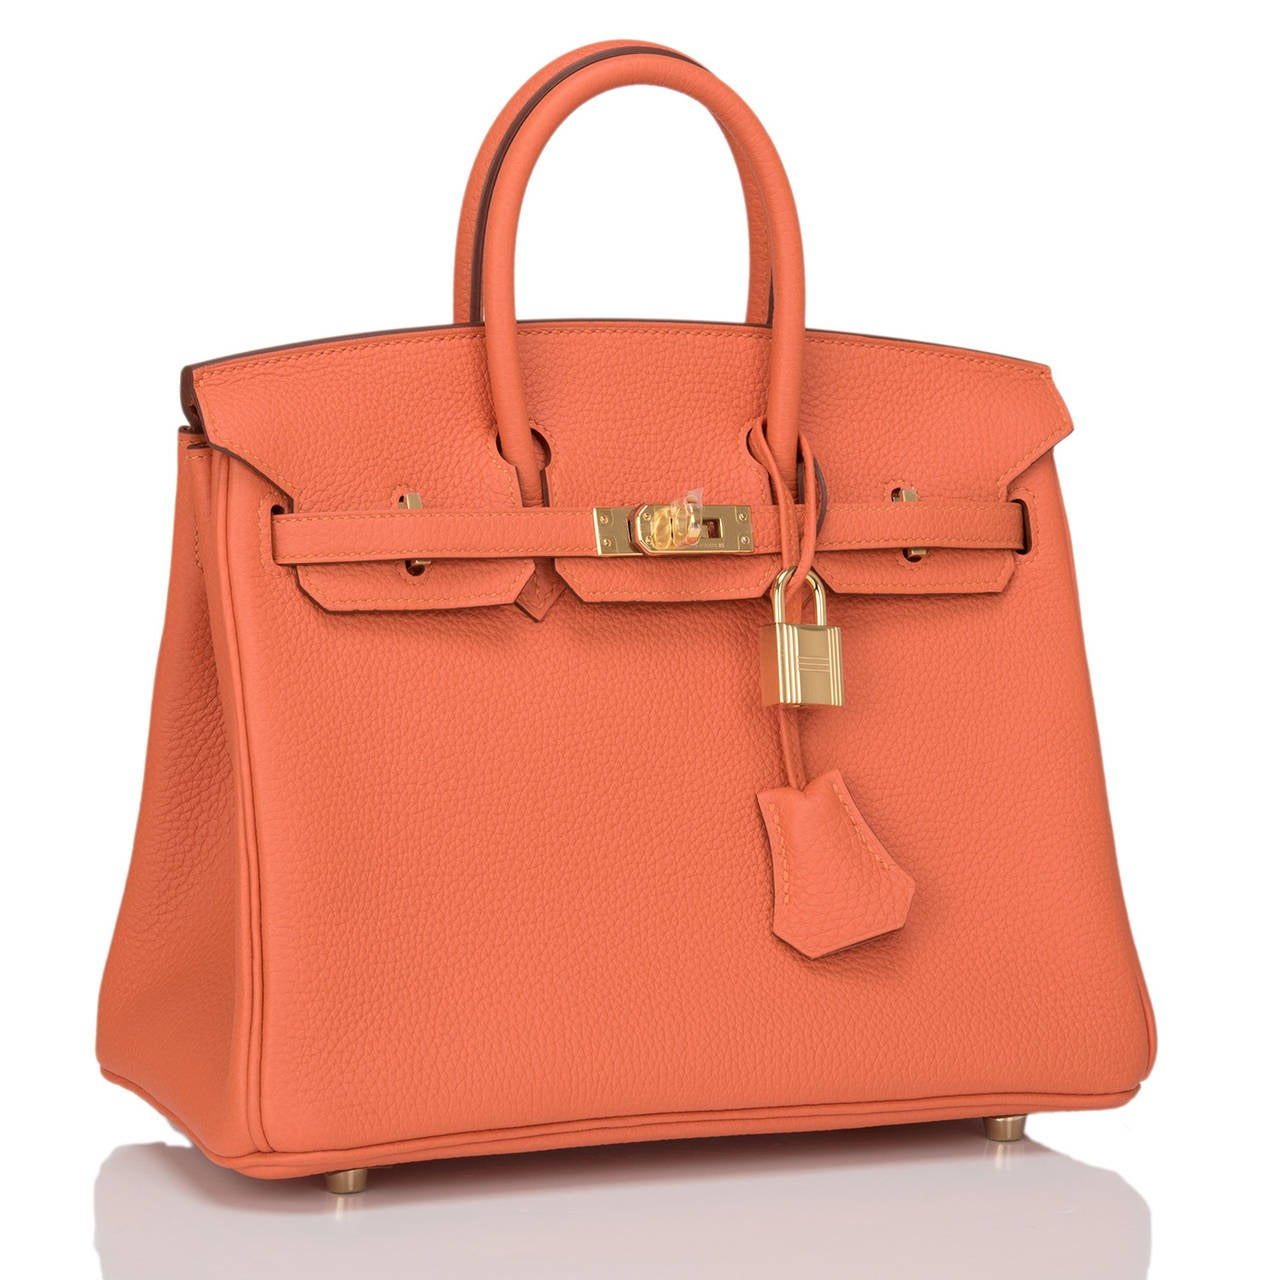 Hermes Feu Birkin 25cm in swift leather with gold hardware.  This style features tonal stitching, front toggle closure, clochette with lock and two keys, and double rolled handles.  The interior is lined in Feu chevre with one zip pocket with an